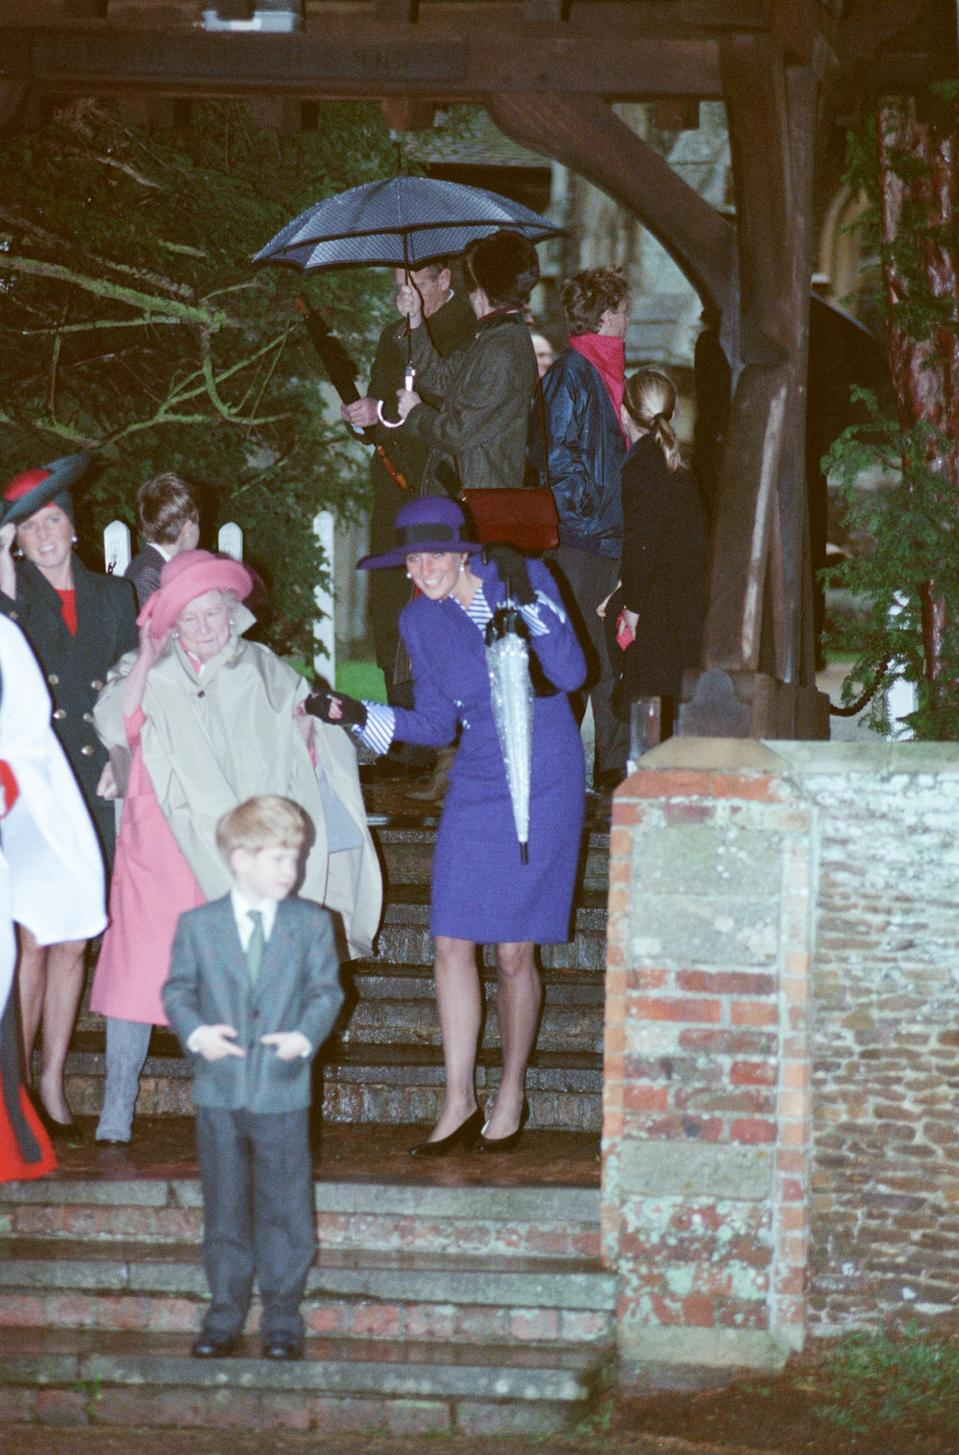 The Princess of Wales, Princess Diana, at Sandringham on a very windy Christmas Day 1990. (Kent Gavin/Mirrorpix/Getty Images)